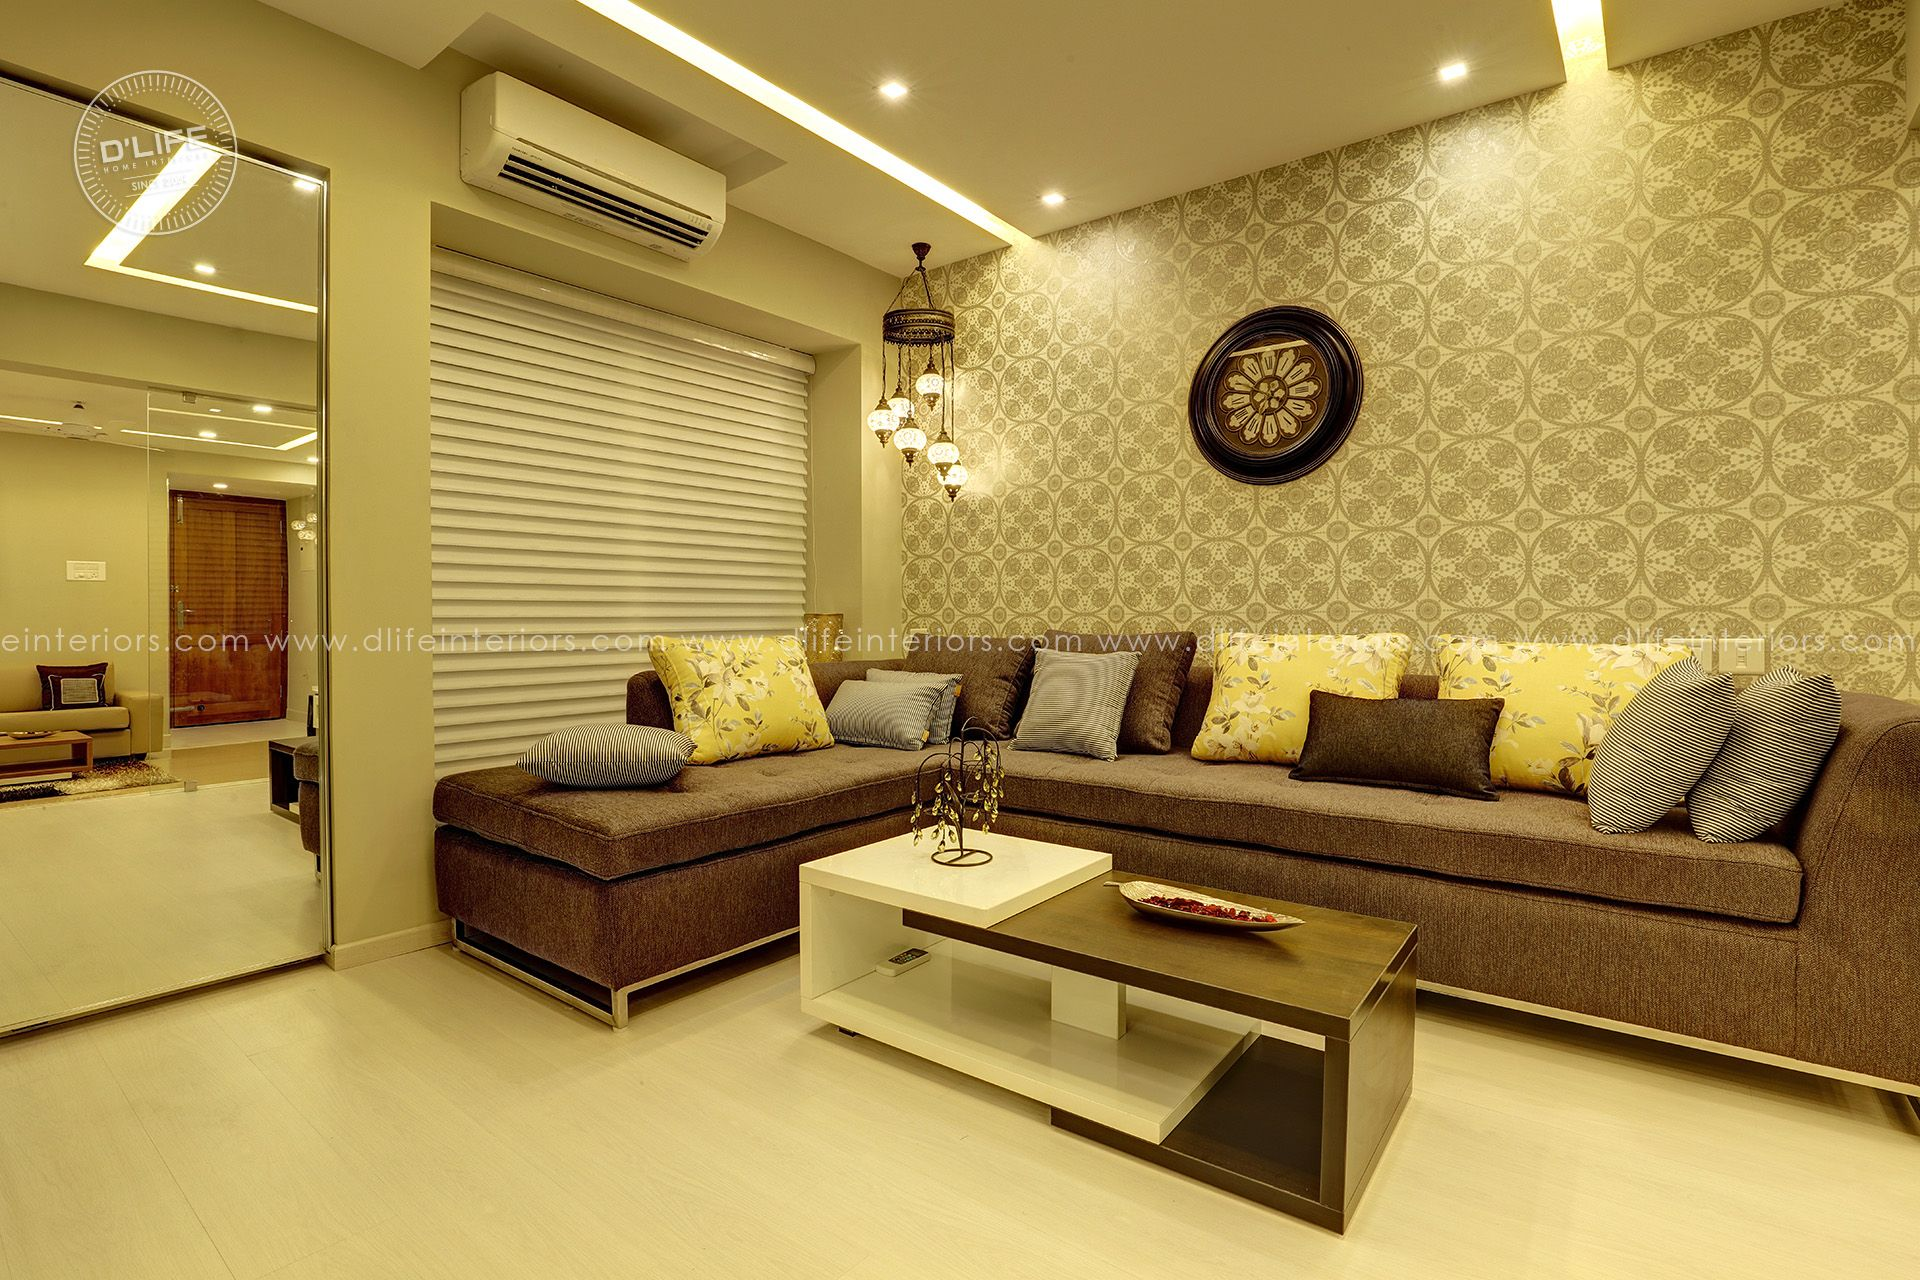 Gallery Interior Designs And Kitchen At Cochin Kerala To